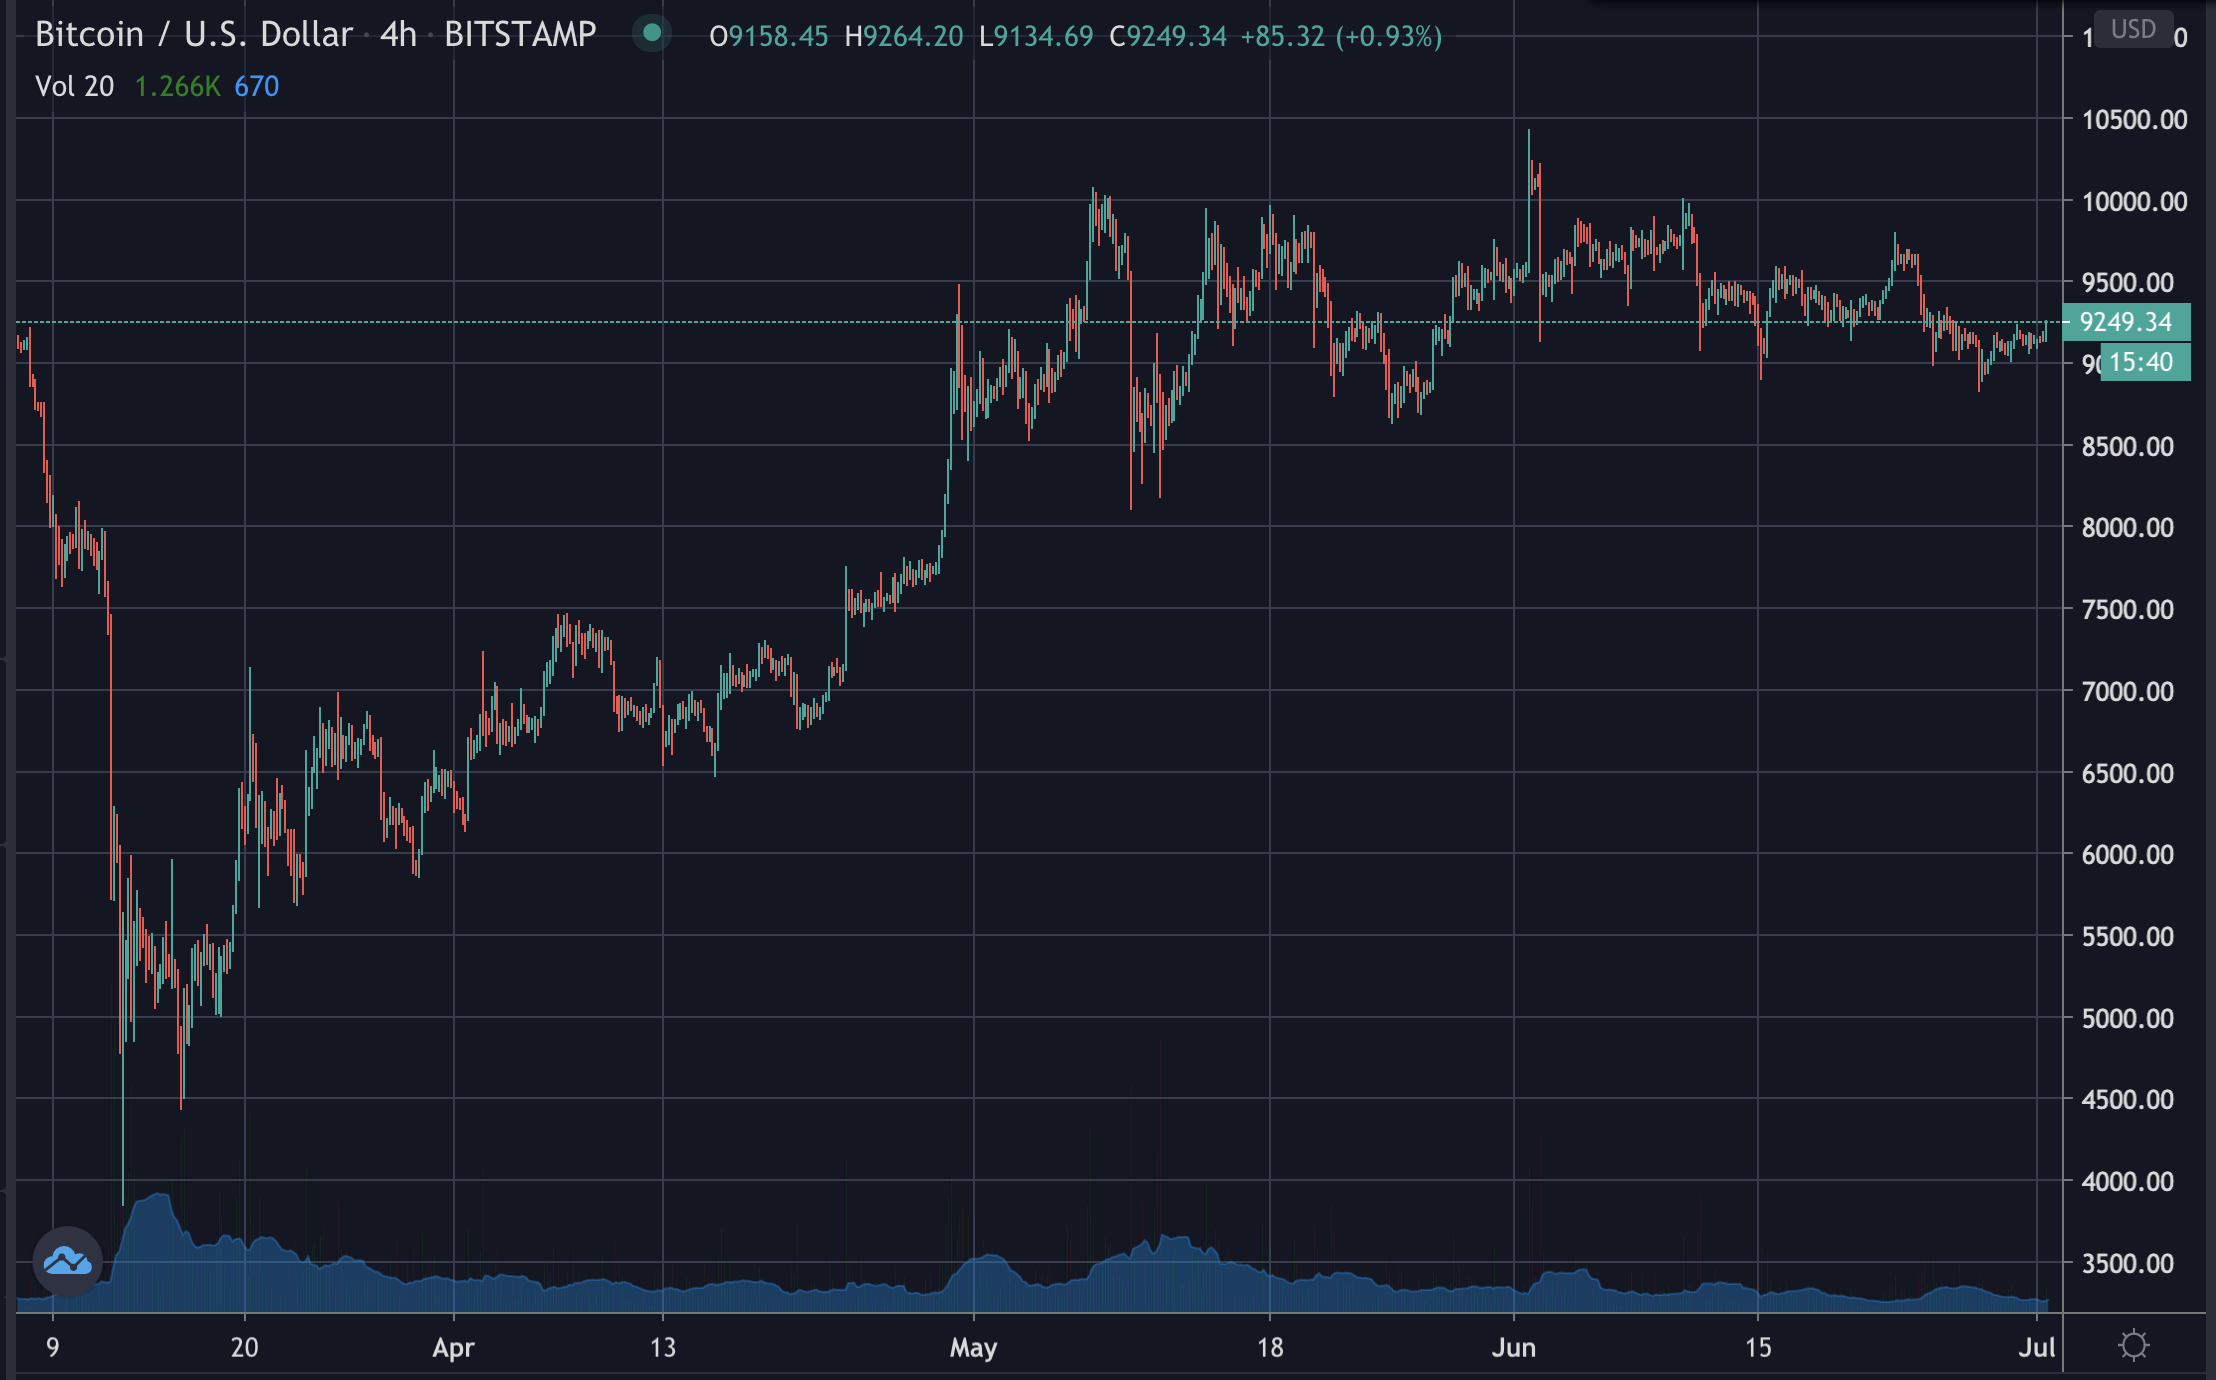 Bitcoin's price on 4h candles, July 2020